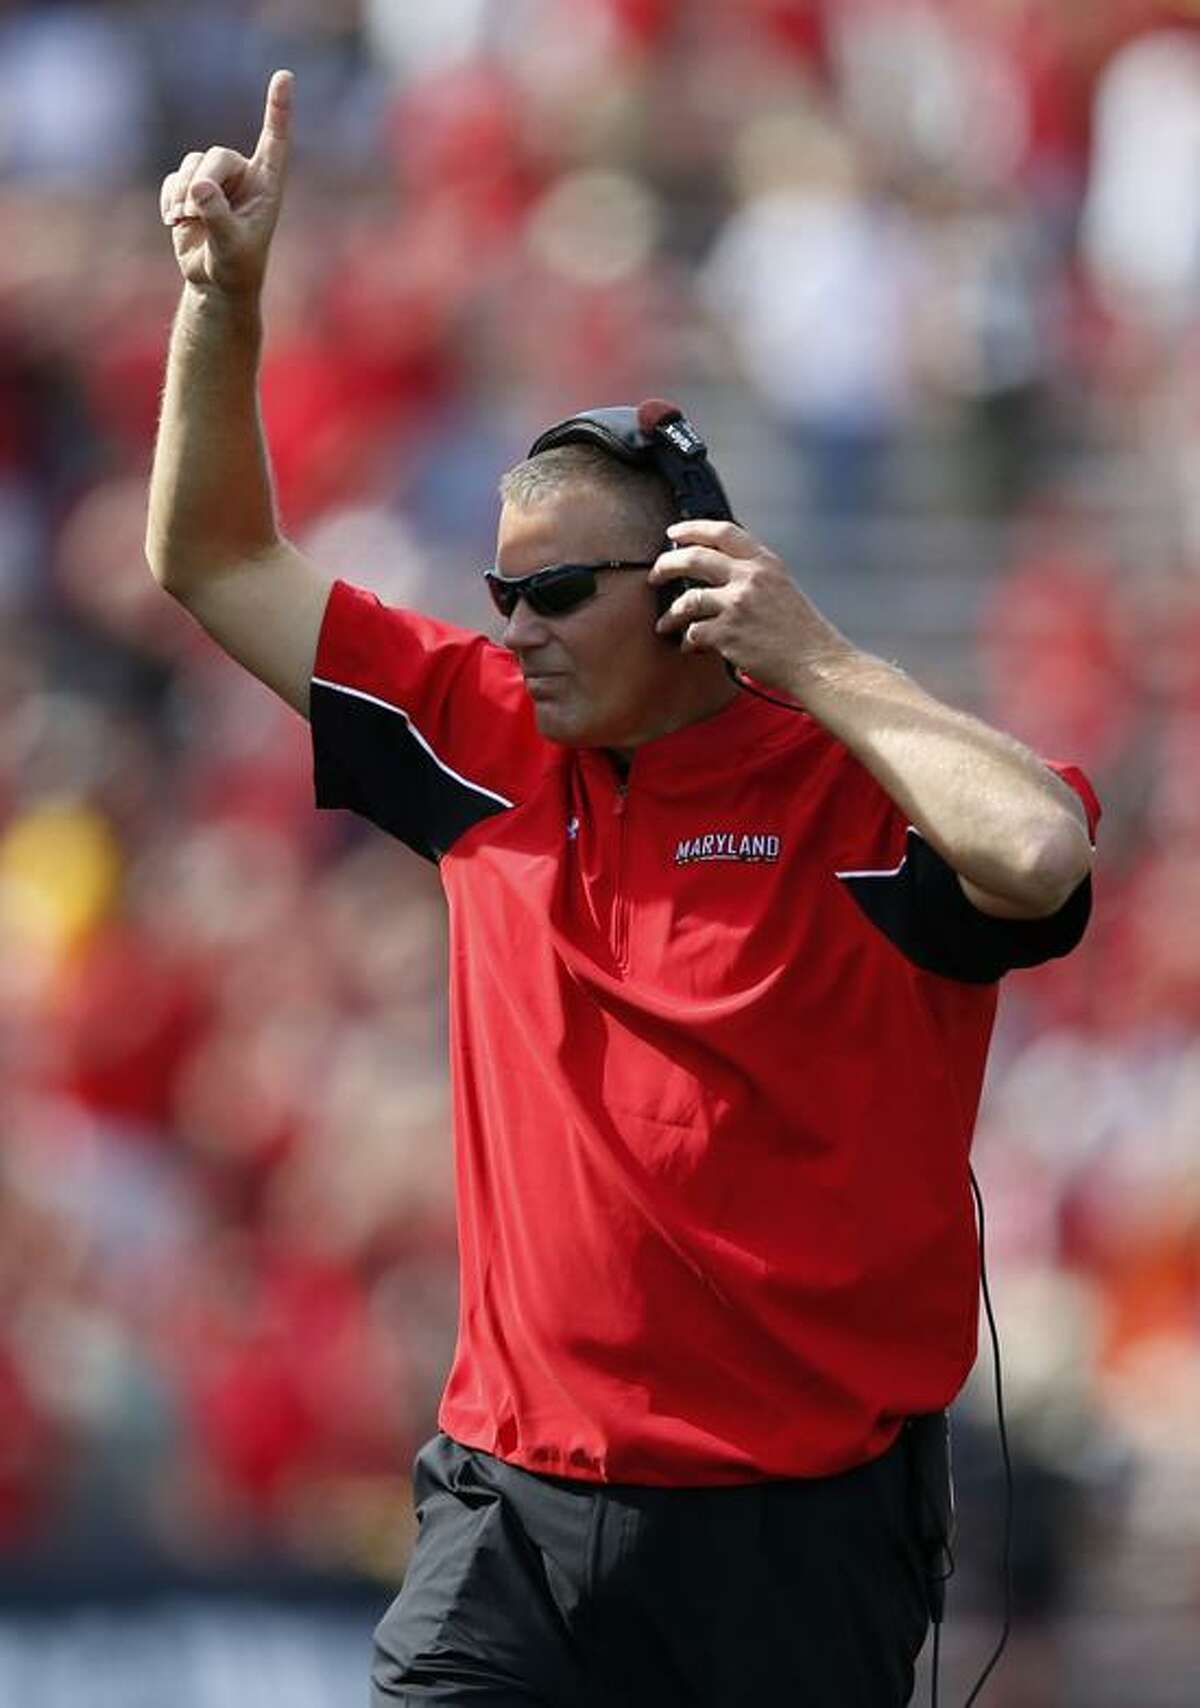 This Sept. 15 file photo shows Maryland head coach Randy Edsall reacts after his team scored a touchdown in the second half of an NCAA college football game against UConn. in College Park, Md. Maryland is set to announce it is joining the Big Ten Monday in 2014. Associated Press.